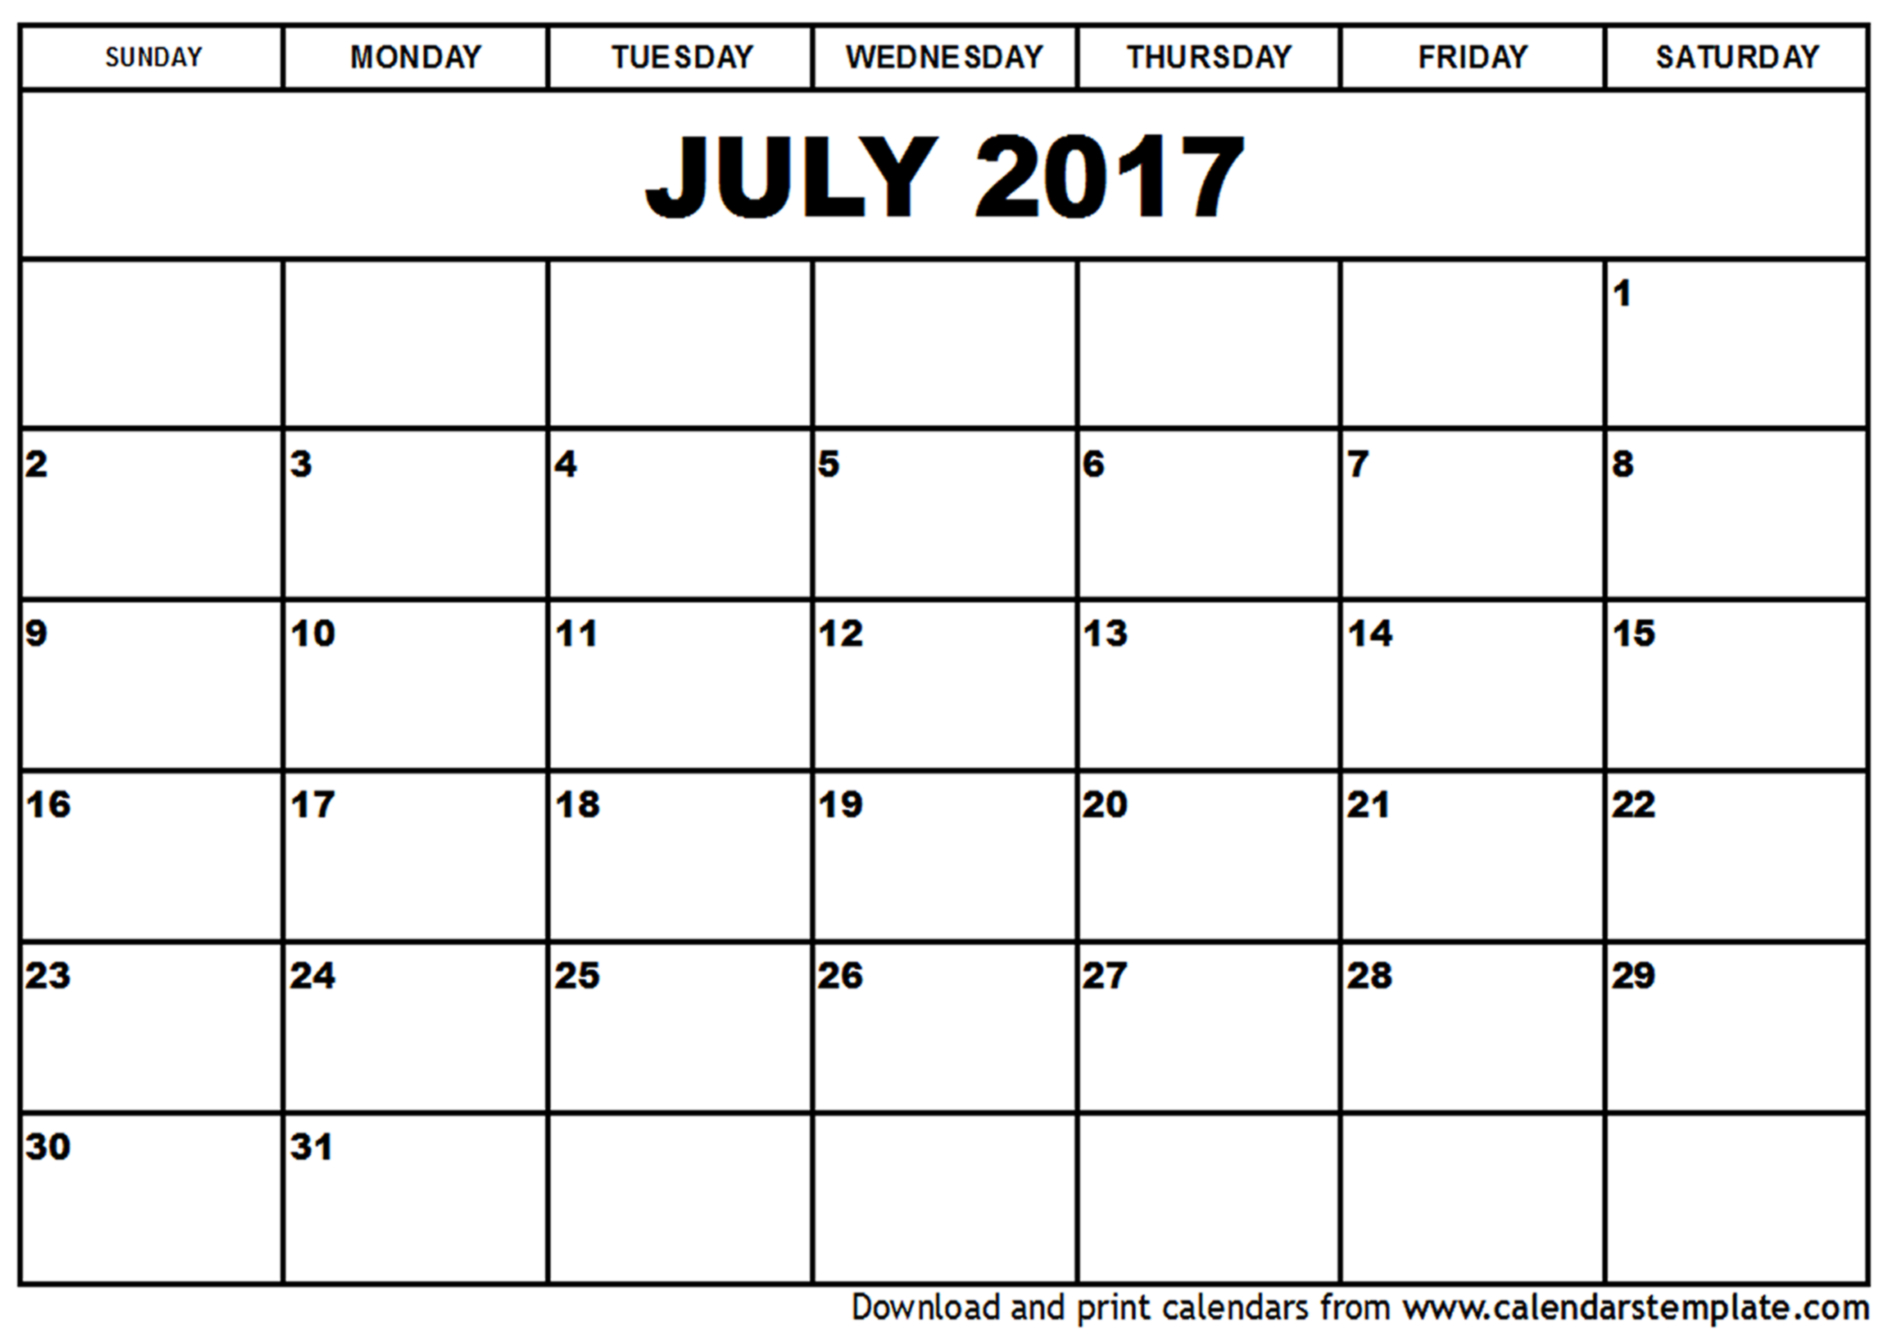 July 2017 Calendar Printable Holidays Template PDF